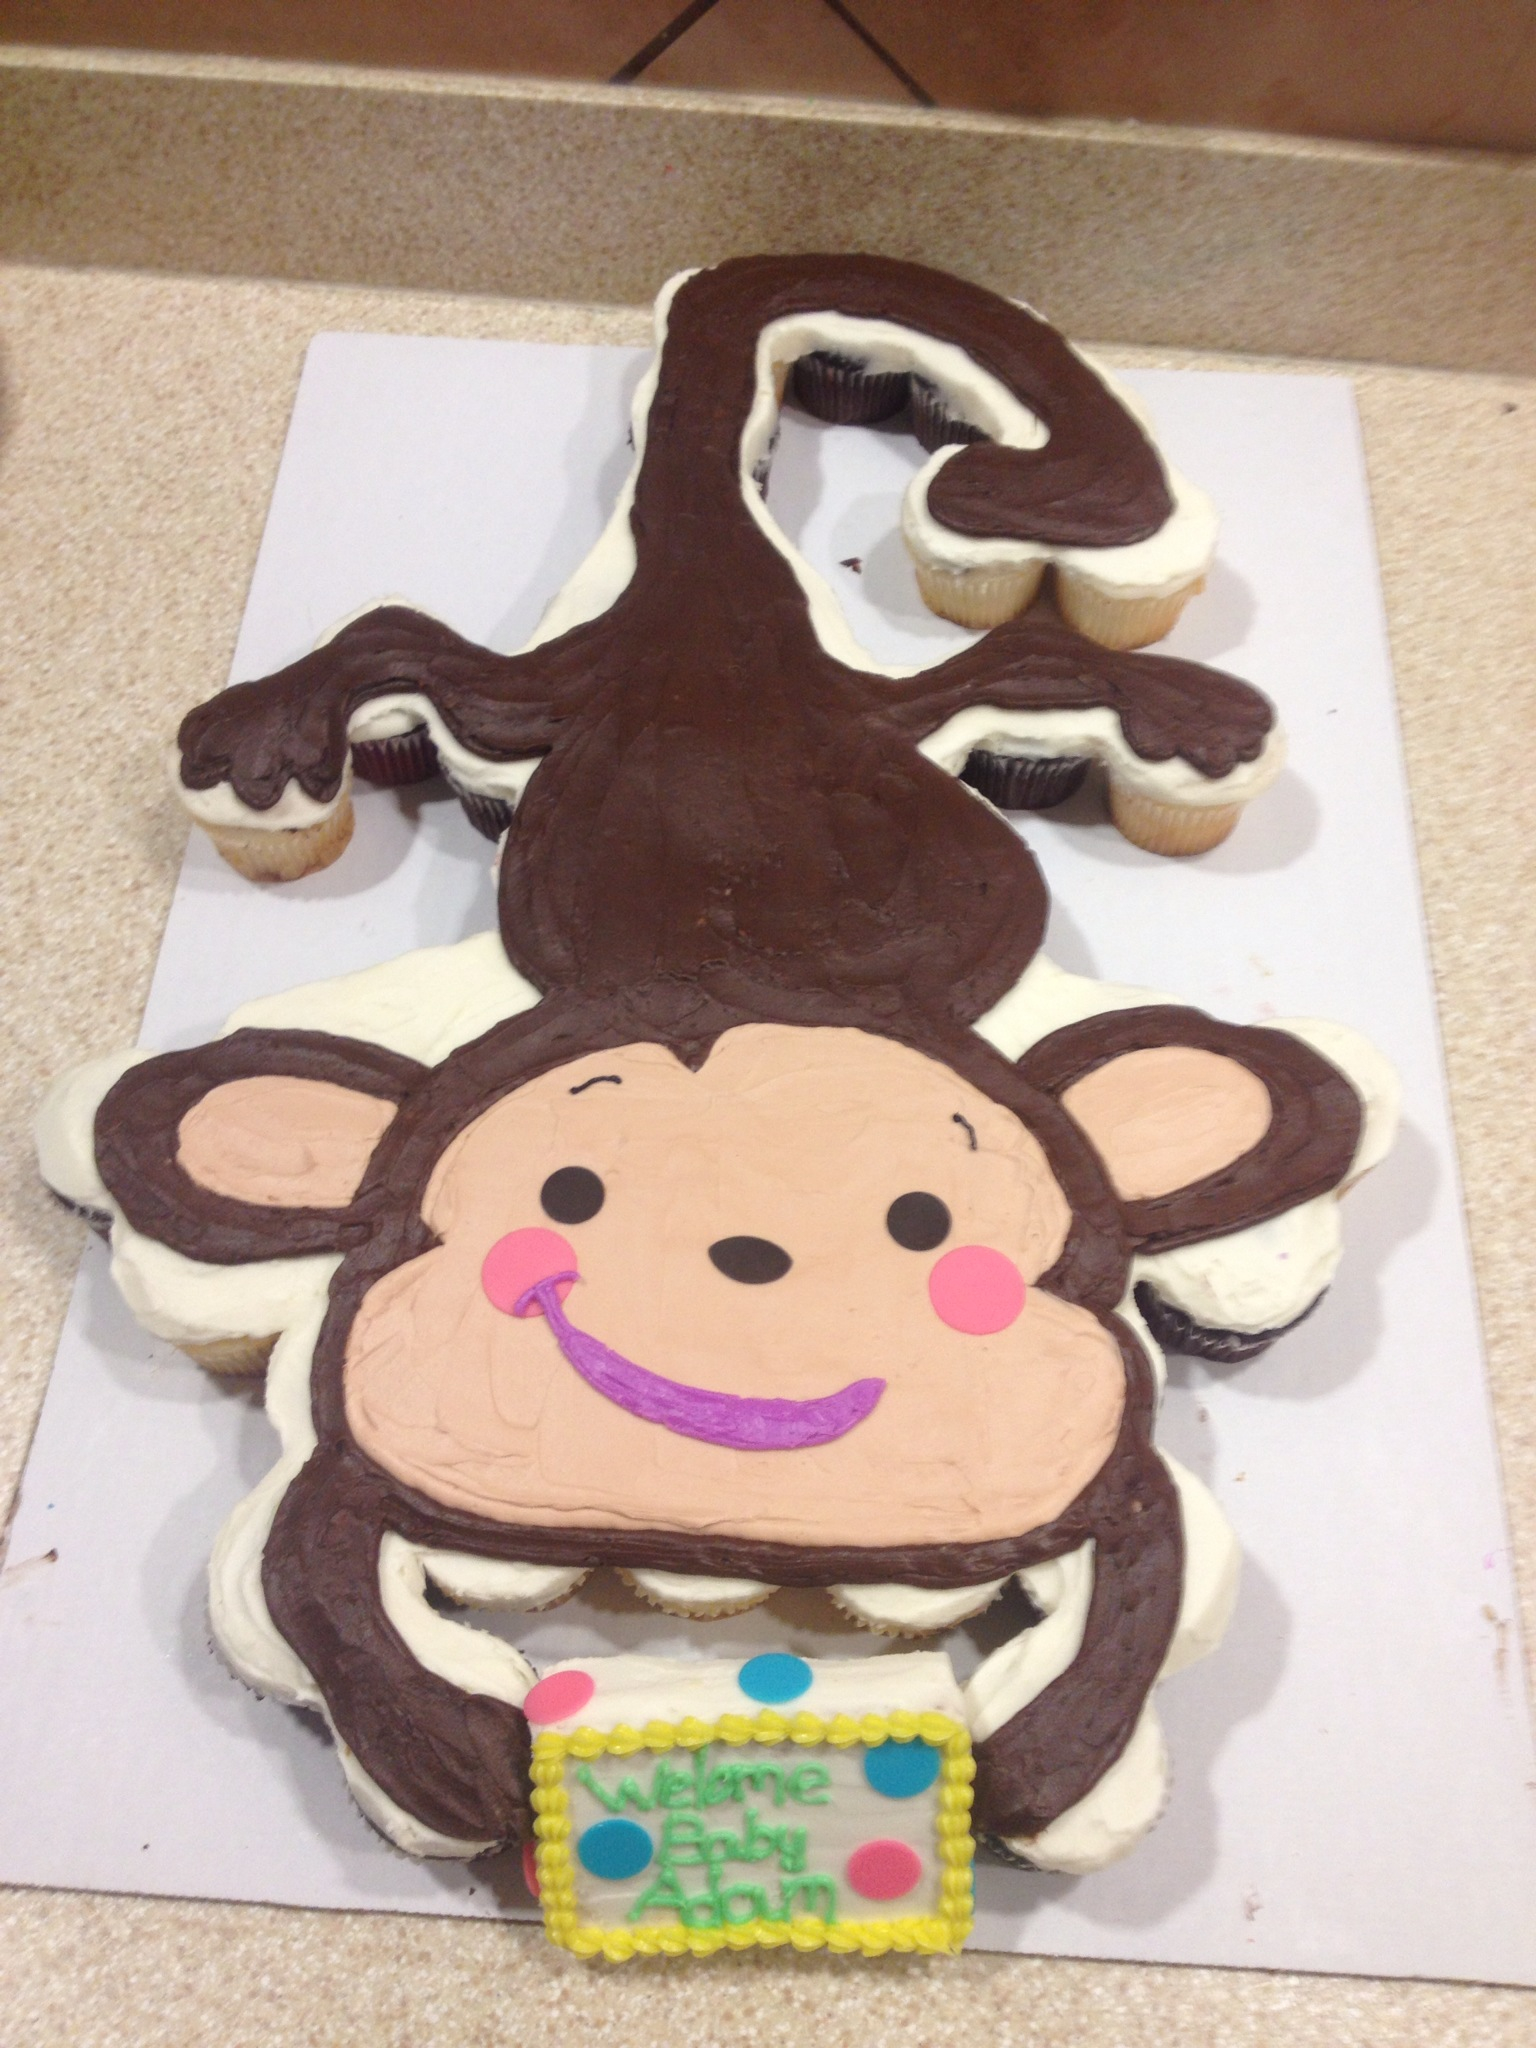 8 Birthday Cake Design Monkey Cupcakes Photo Sock Monkey Cupcakes